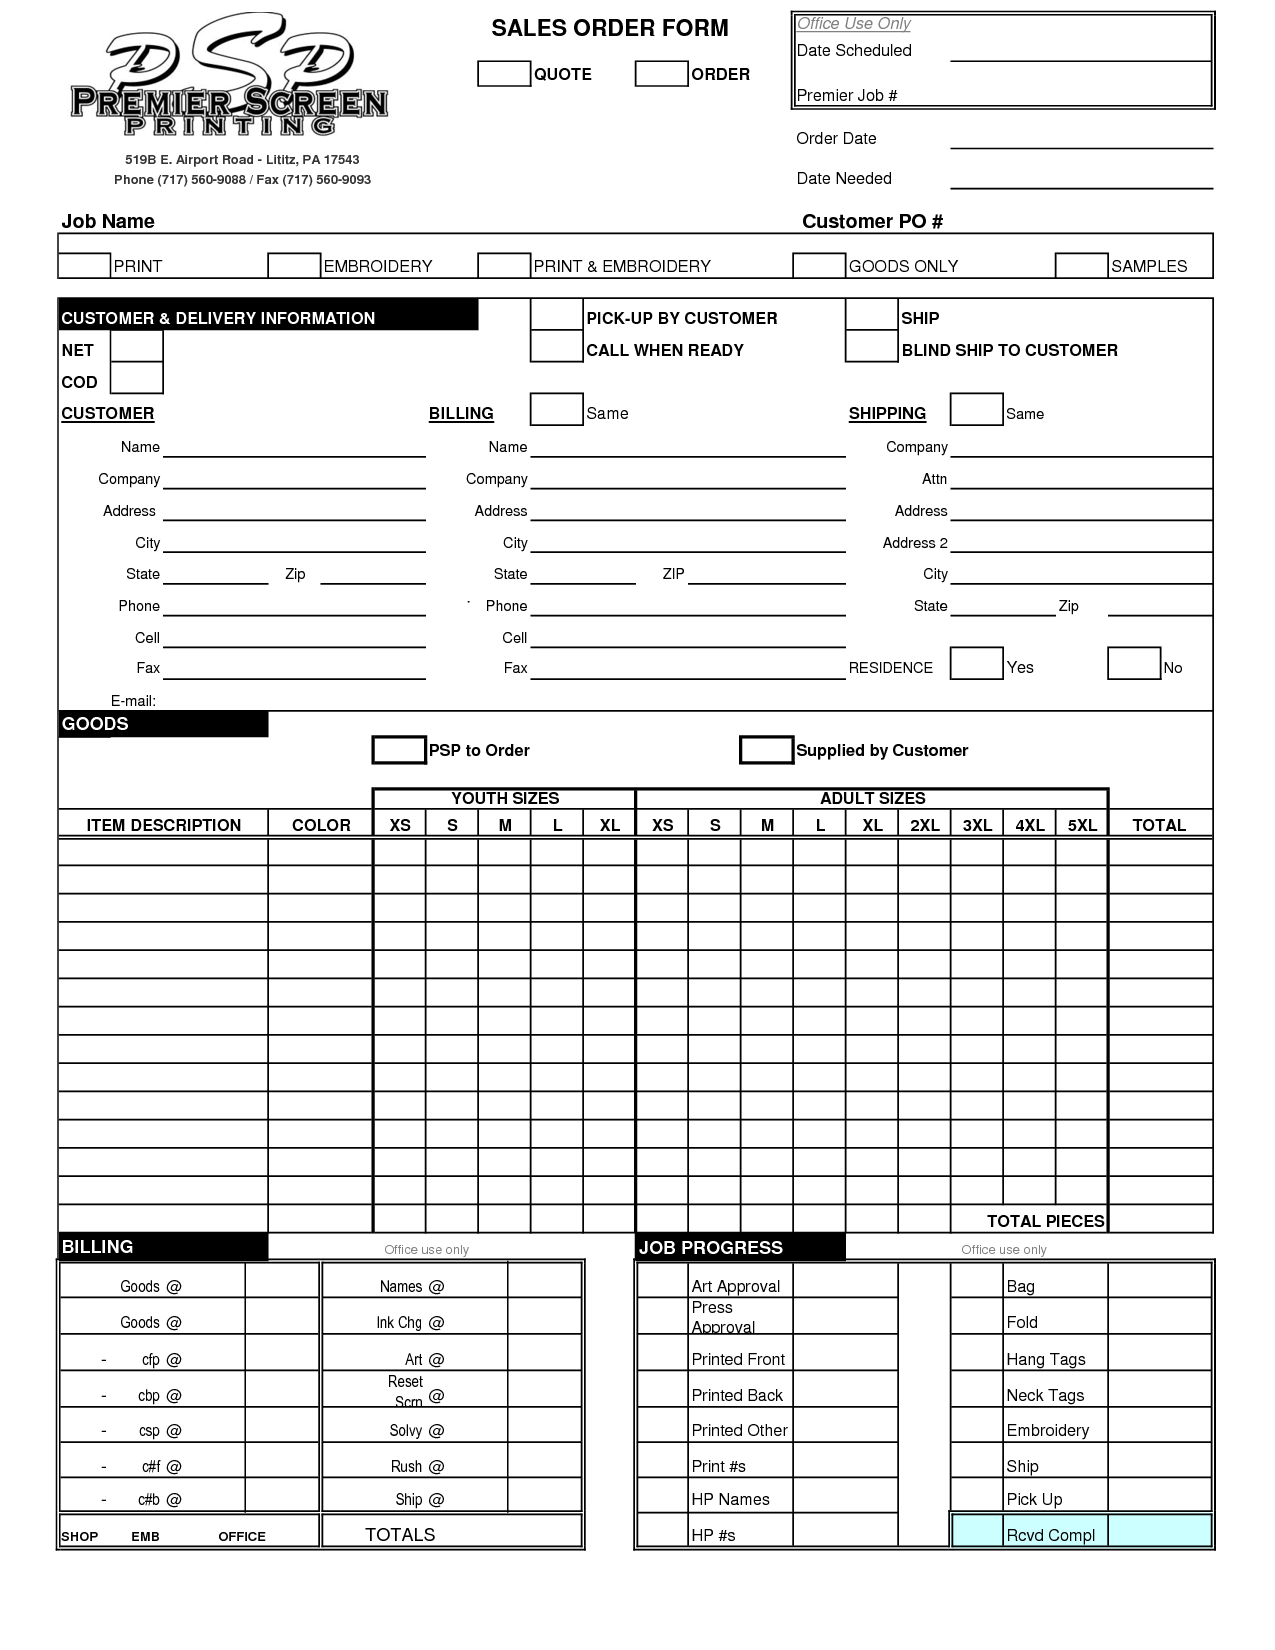 job order form graphic design example maps and files job order form graphic design